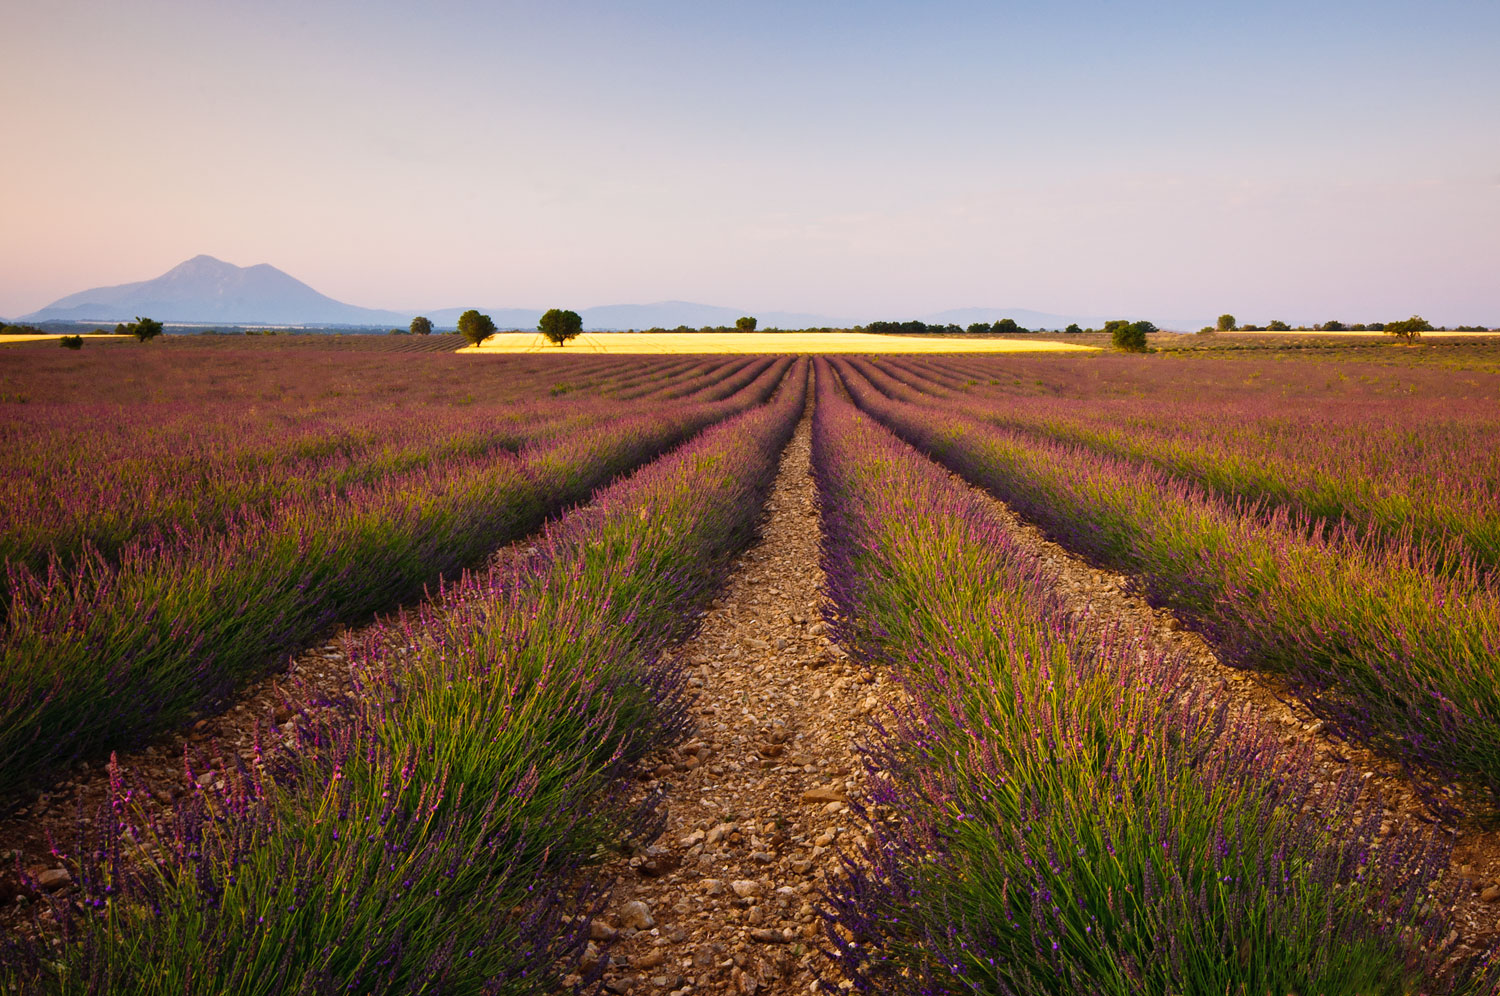 Lavender fields in the South of France.